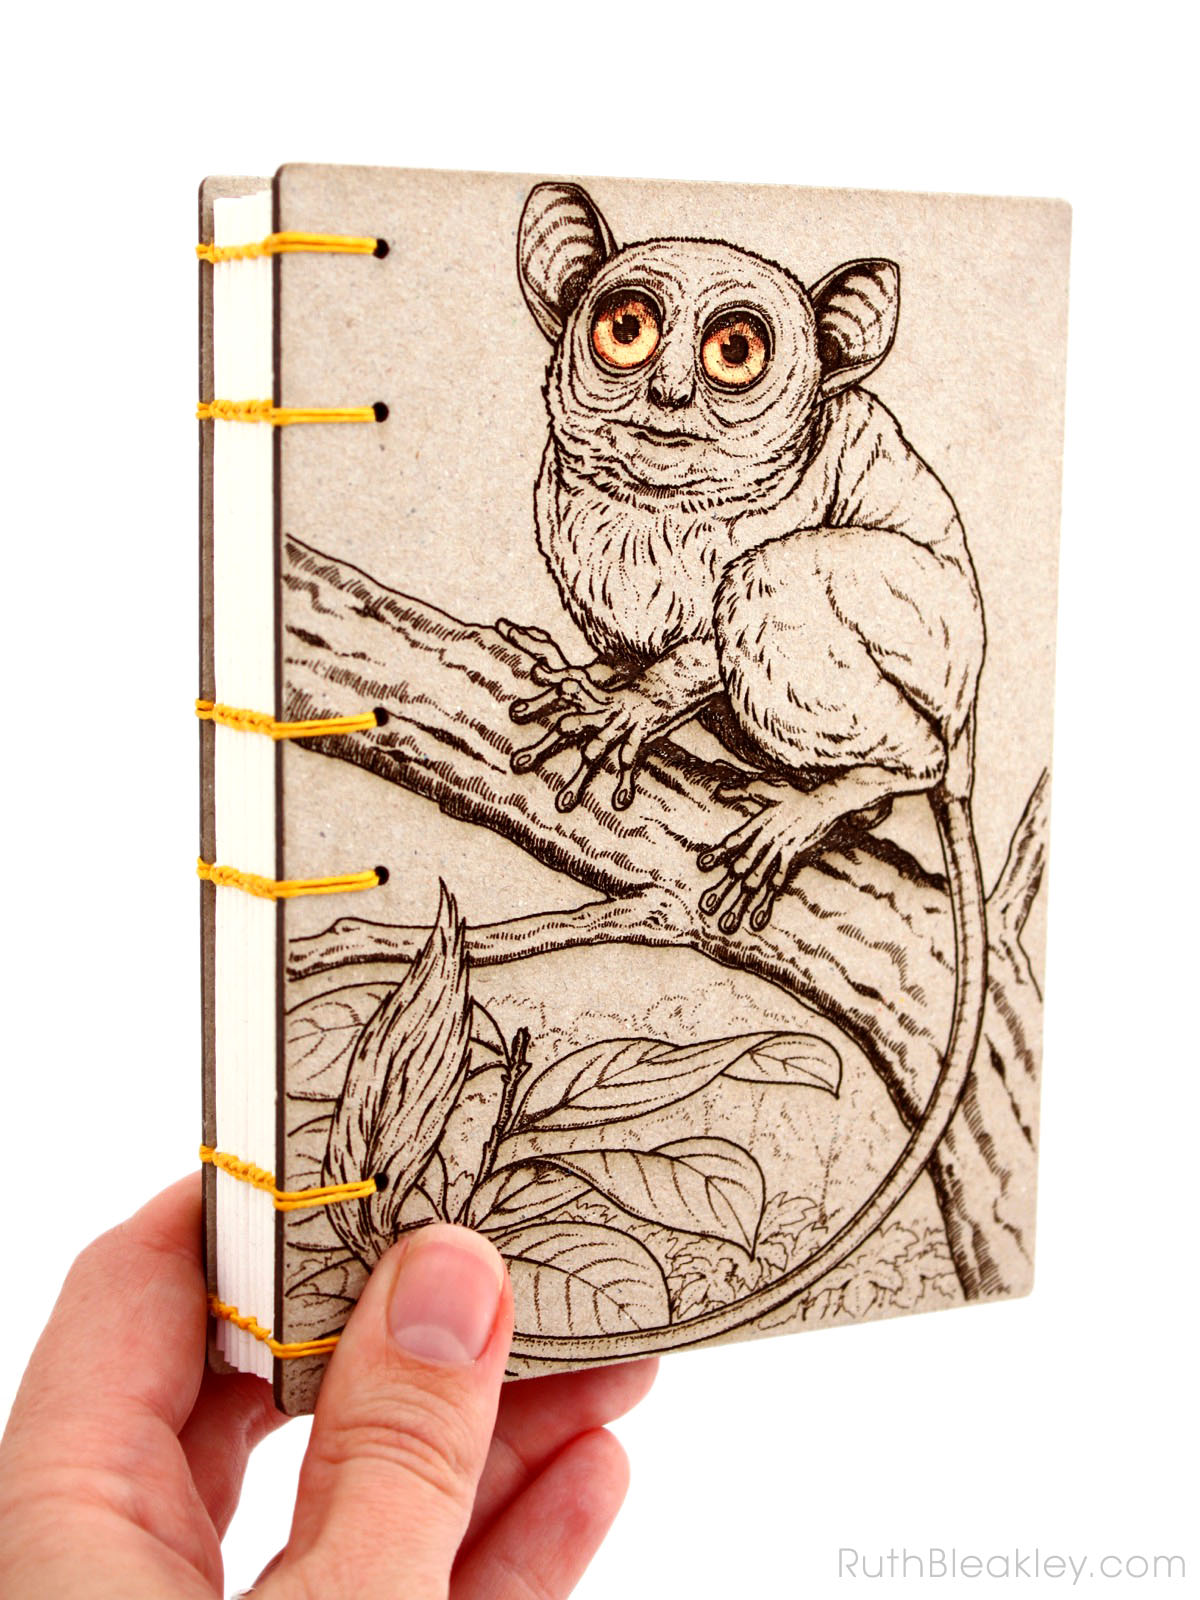 Koboldmaki laser engraved journal handmade by book artist Ruth Bleakley - with golden eyes